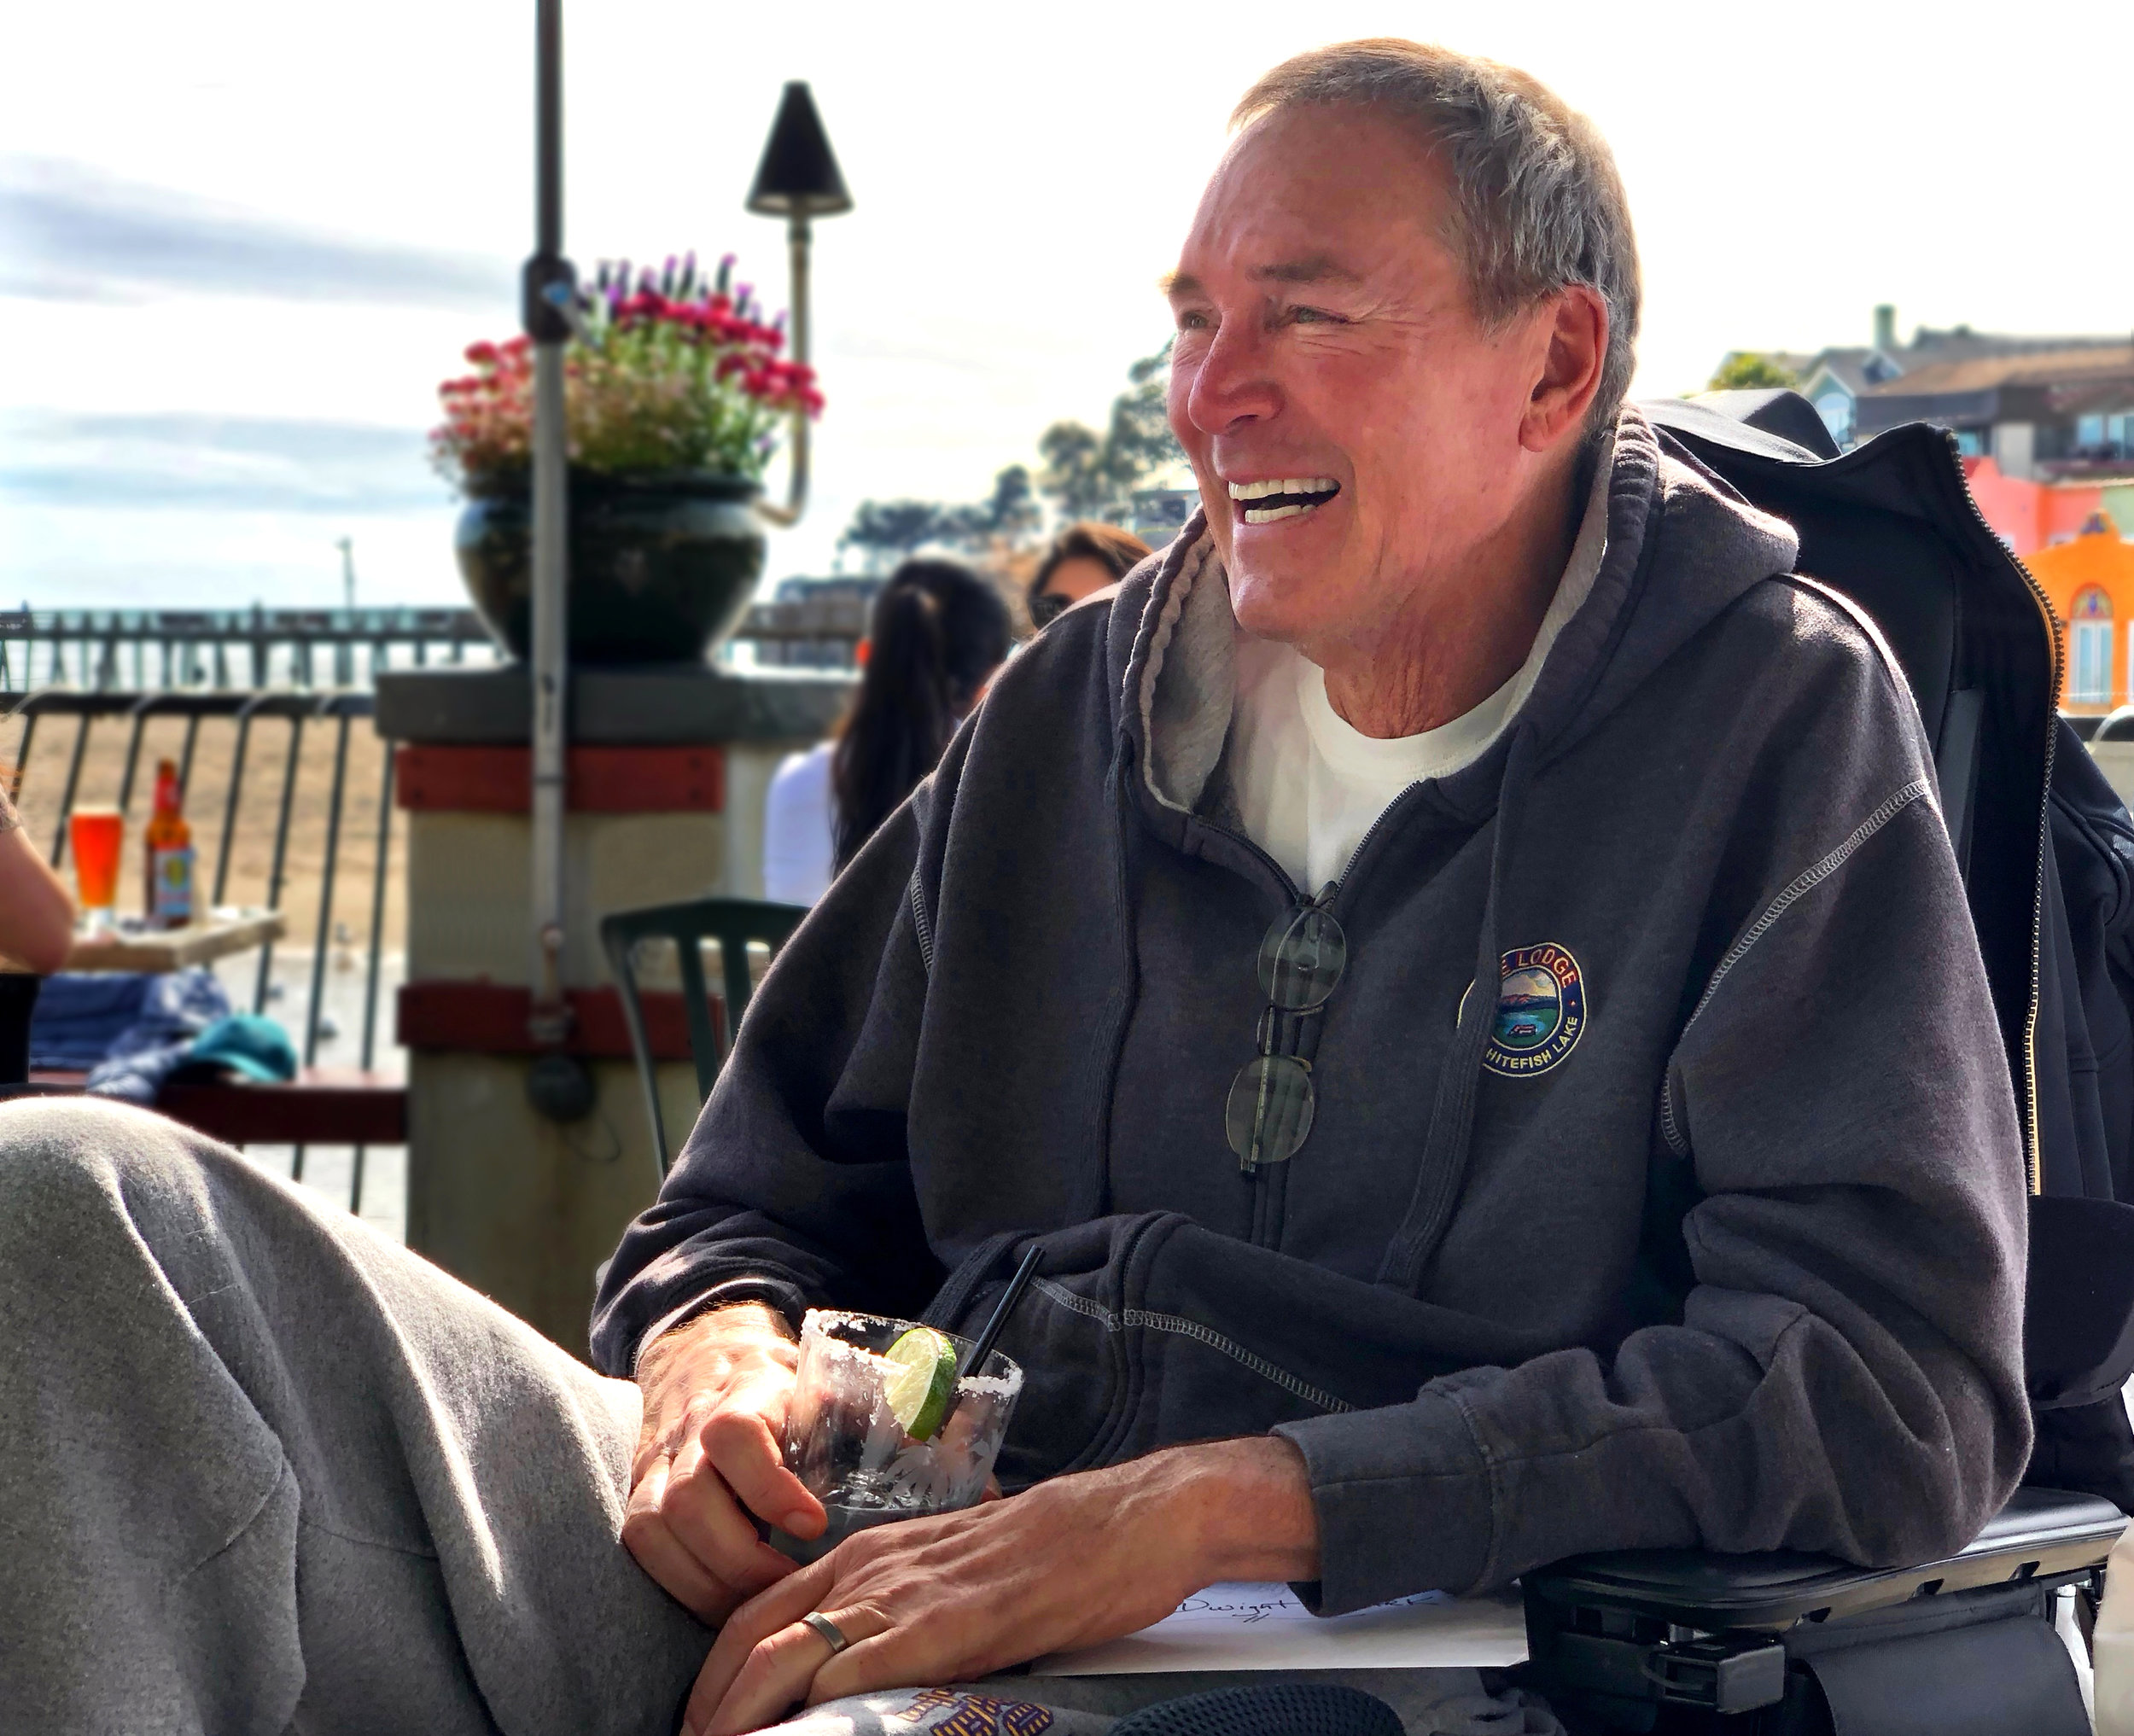 Tuesday's with Dwight - Tuesday lunches with Dwight Clark in Capitola, California became the hottest ticket in town thanks to Kirk Reynolds and Fred Formosa.